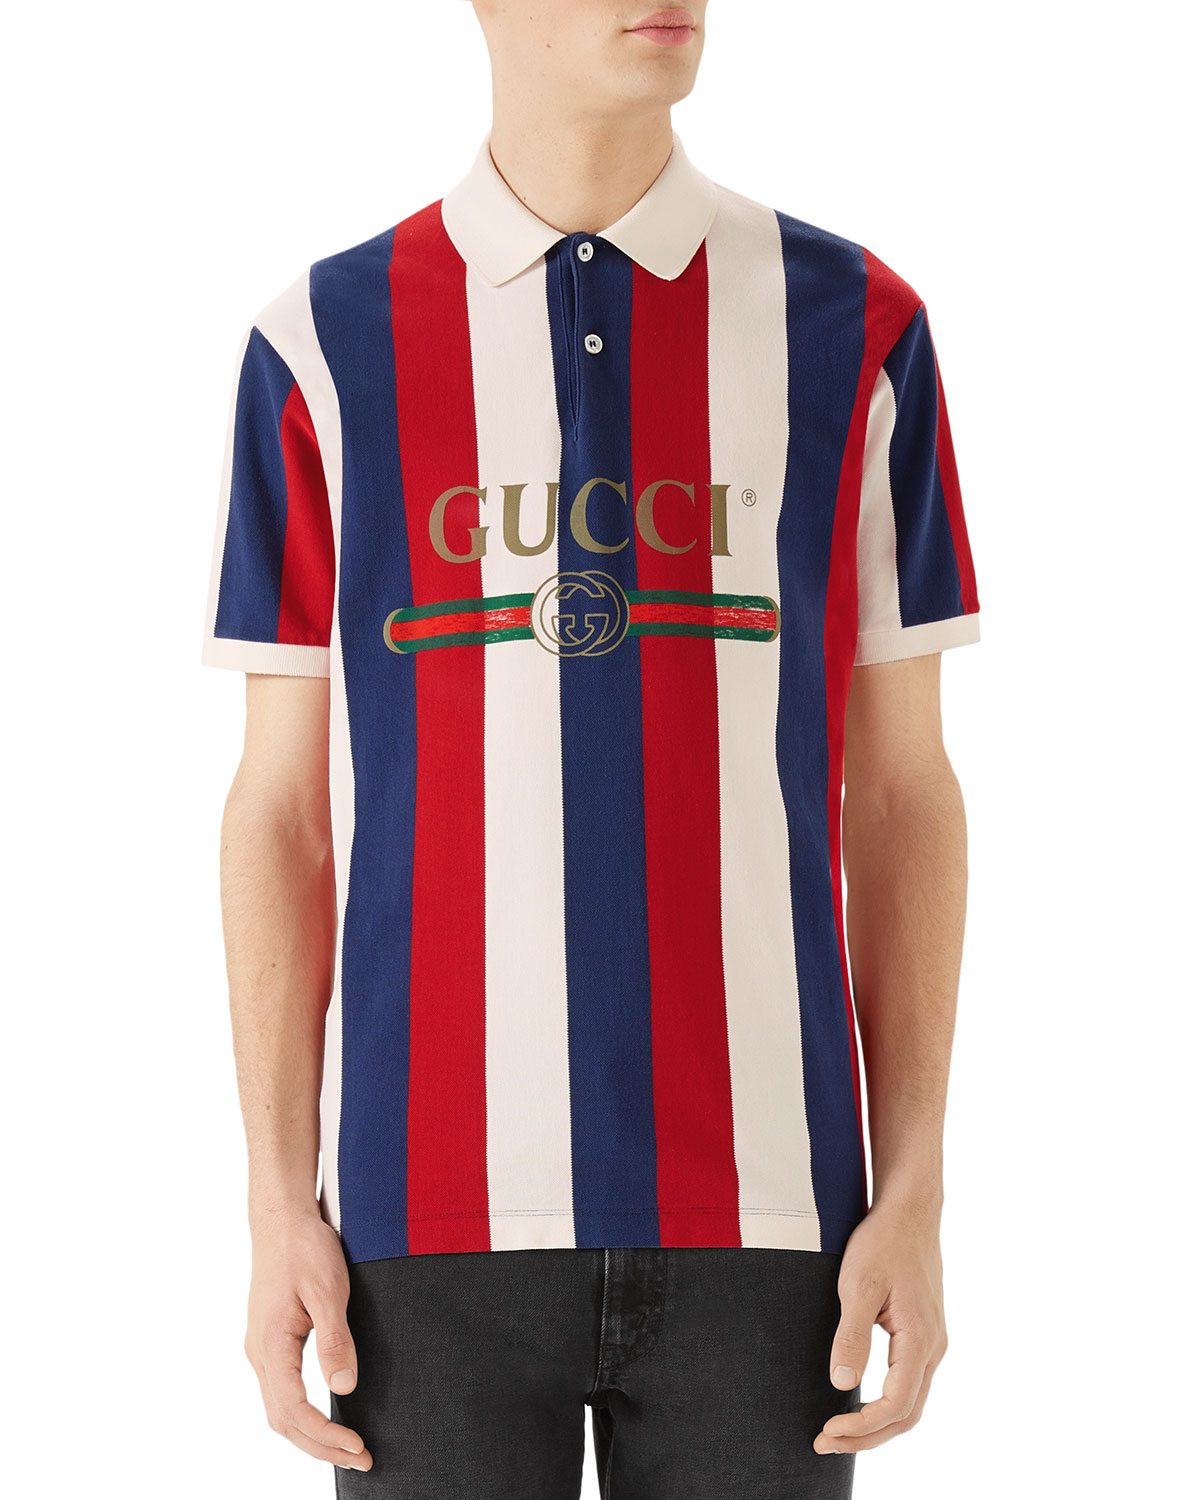 Gucci Mens Striped Pique Polo Shirt Neiman Marcus